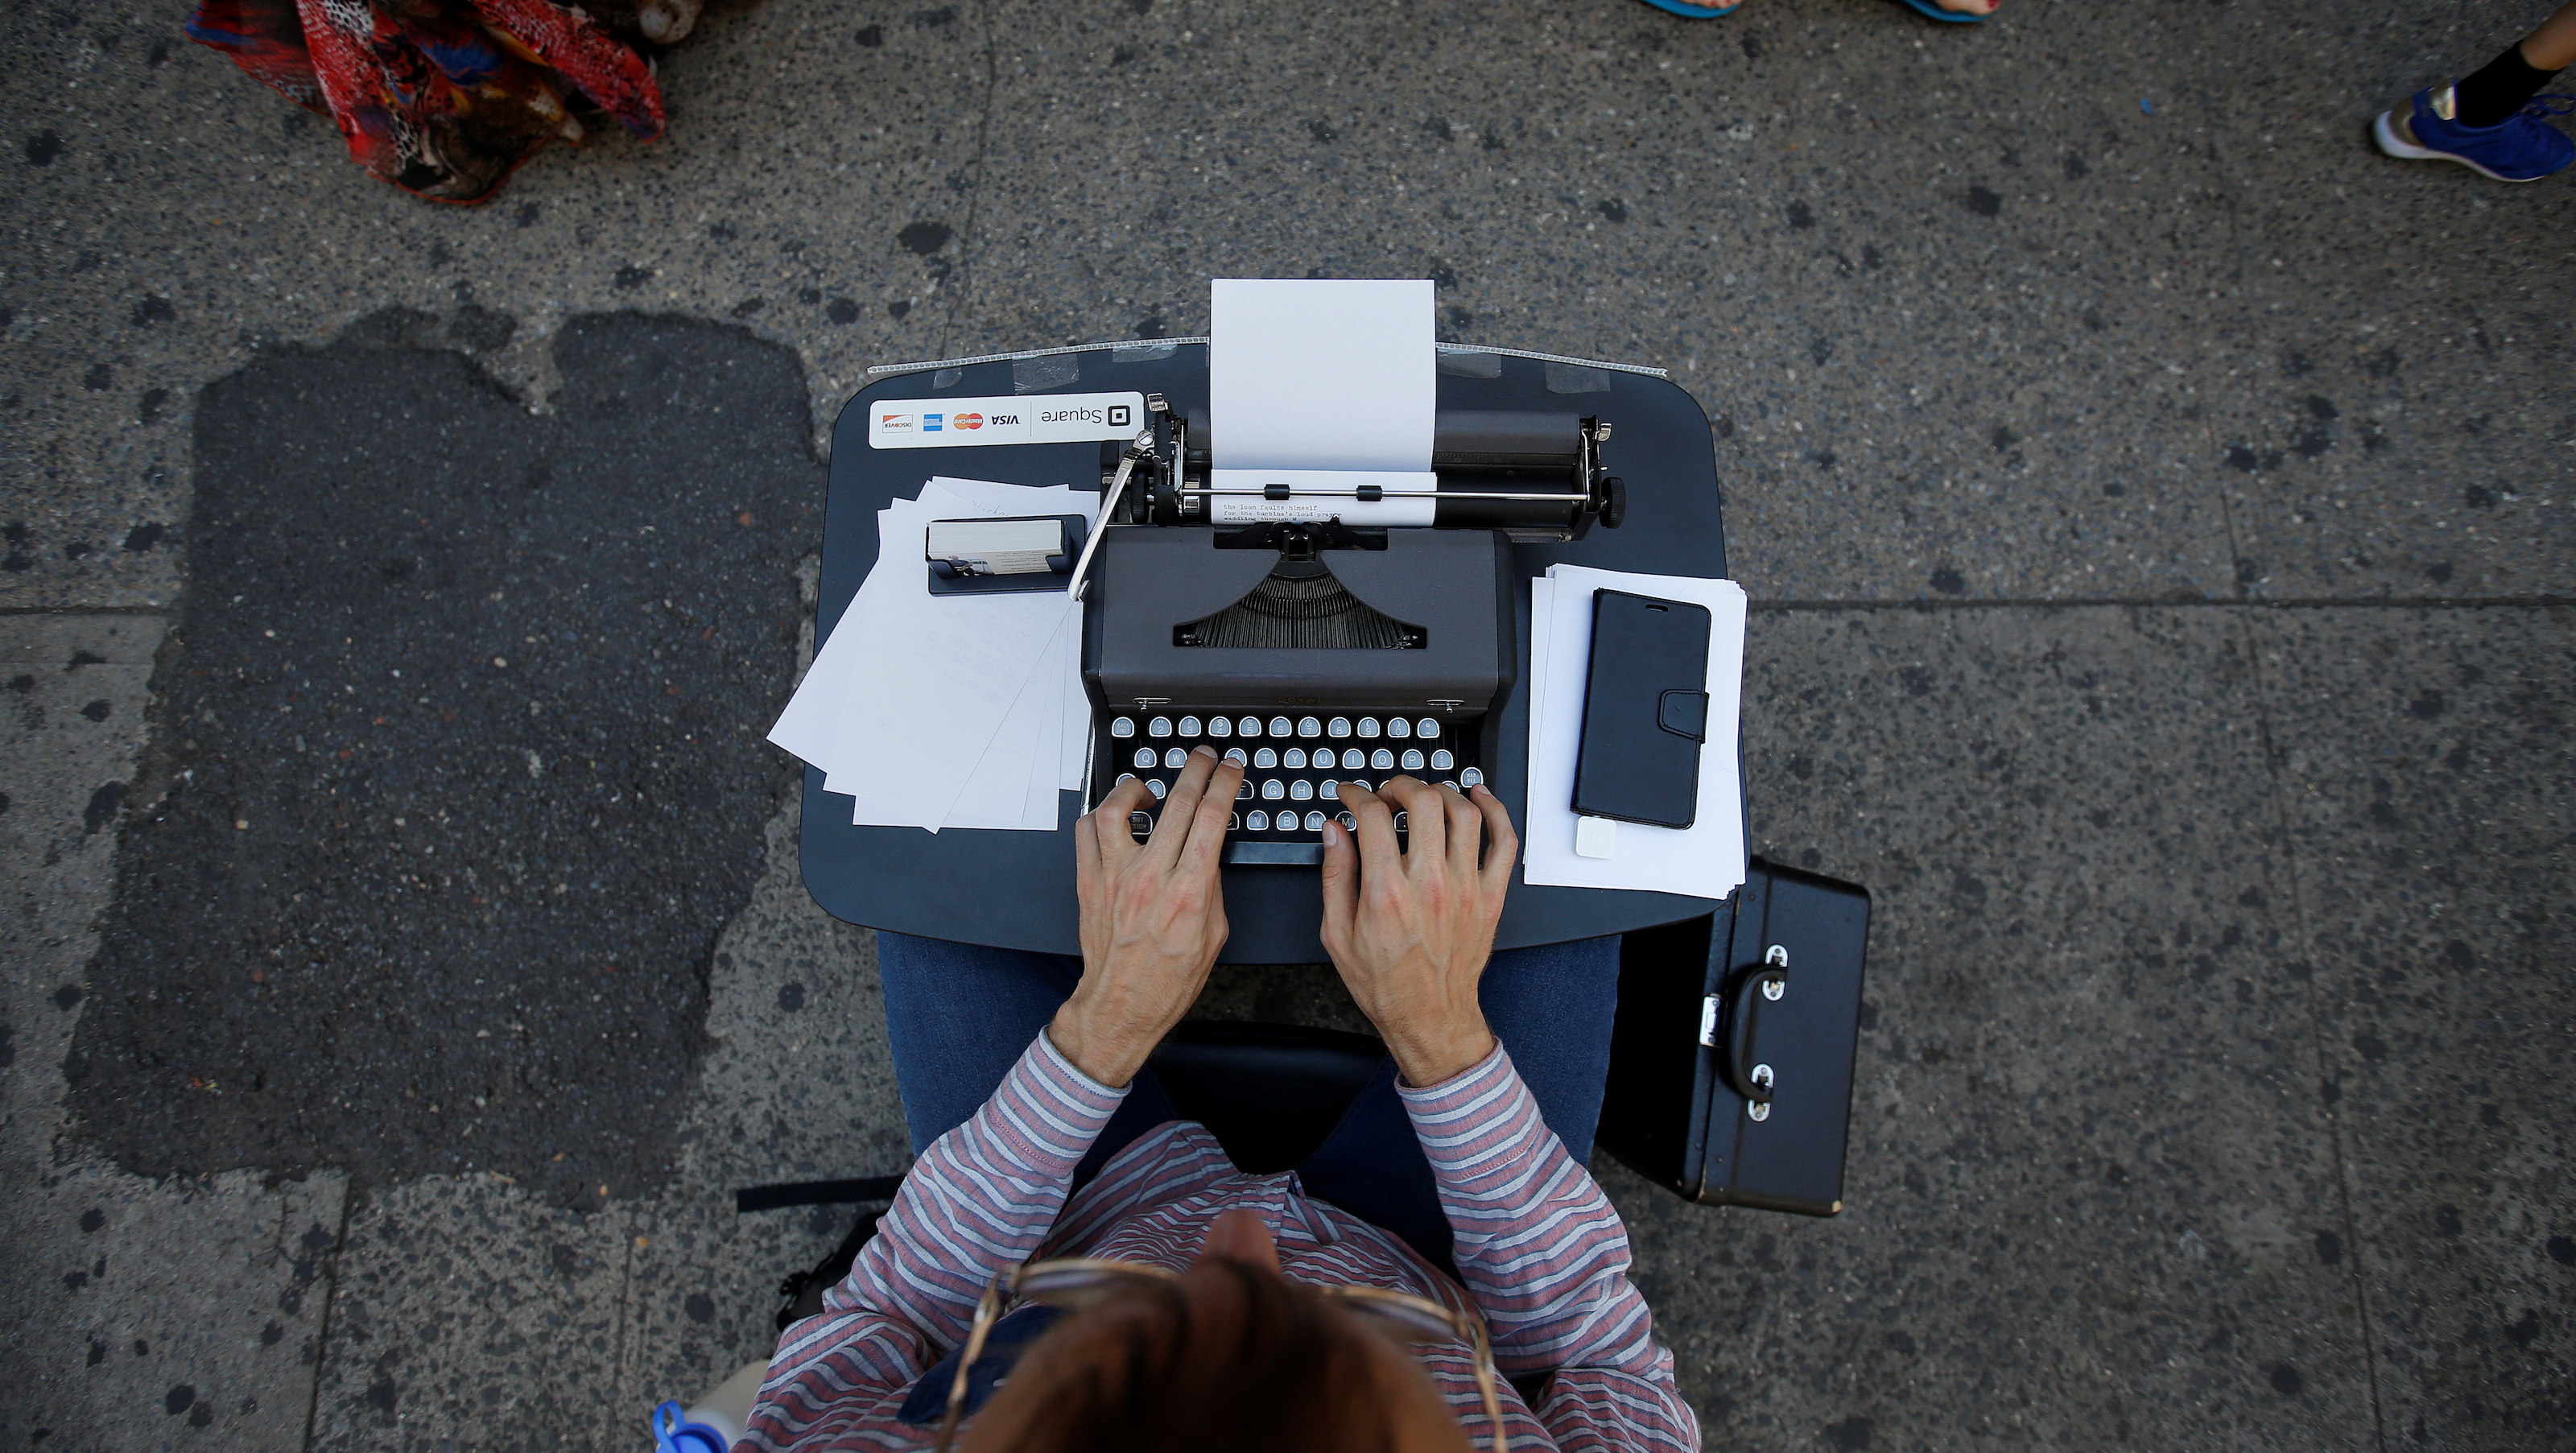 Street poet Allan Andre, who writes impromptu poems on an old typewriter, works on a composition on the sidewalk in New York City, New York, U.S., August 1, 2017. REUTERS/Carlo Allegri - RC1AC8AC9AD0